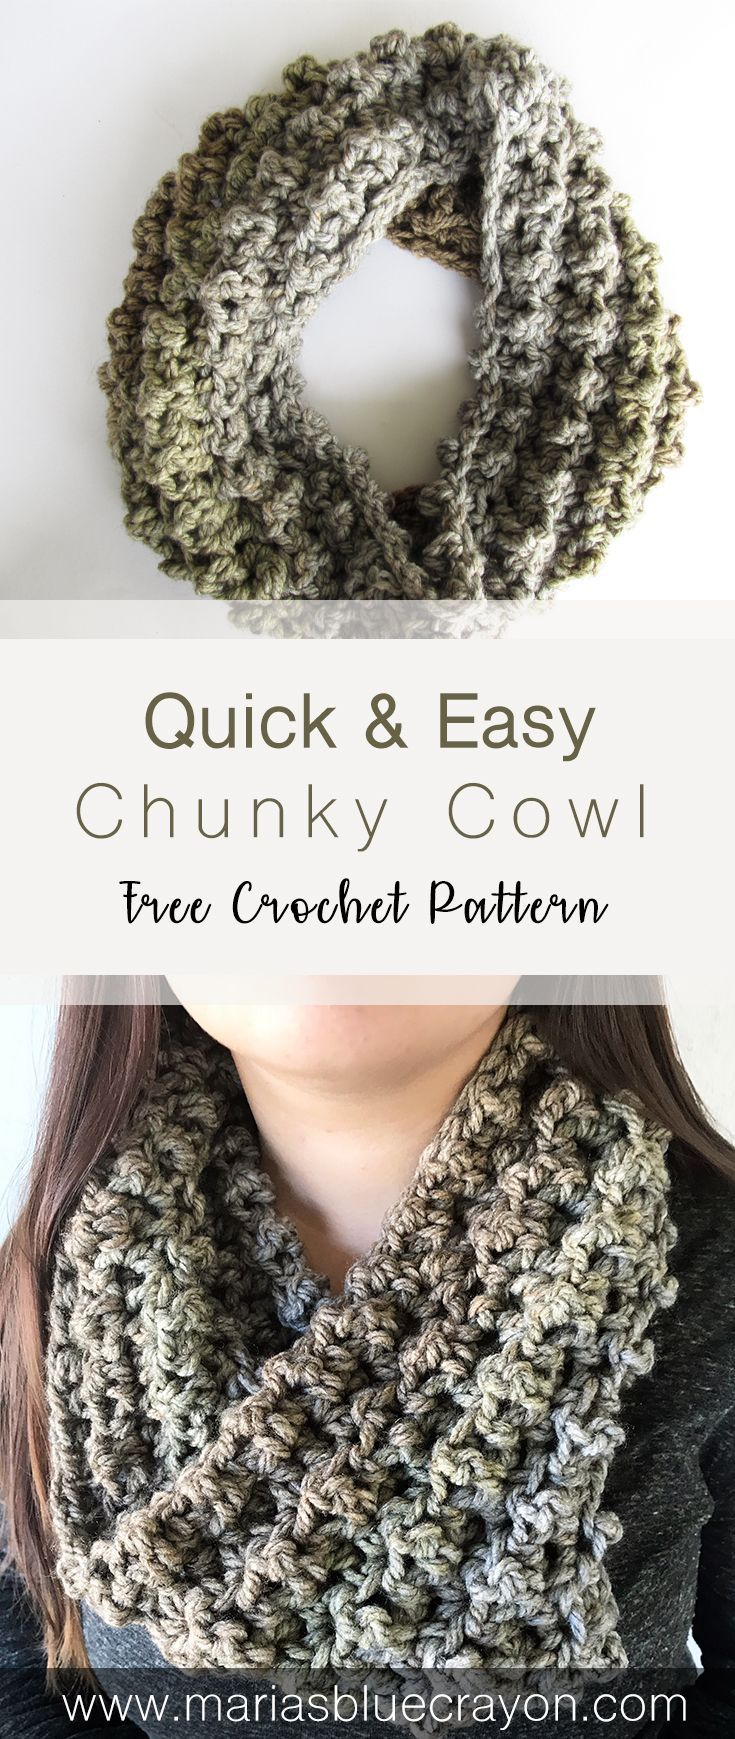 Quick & Easy Chunky Cowl - Free Crochet Pattern in 2018 | String ...